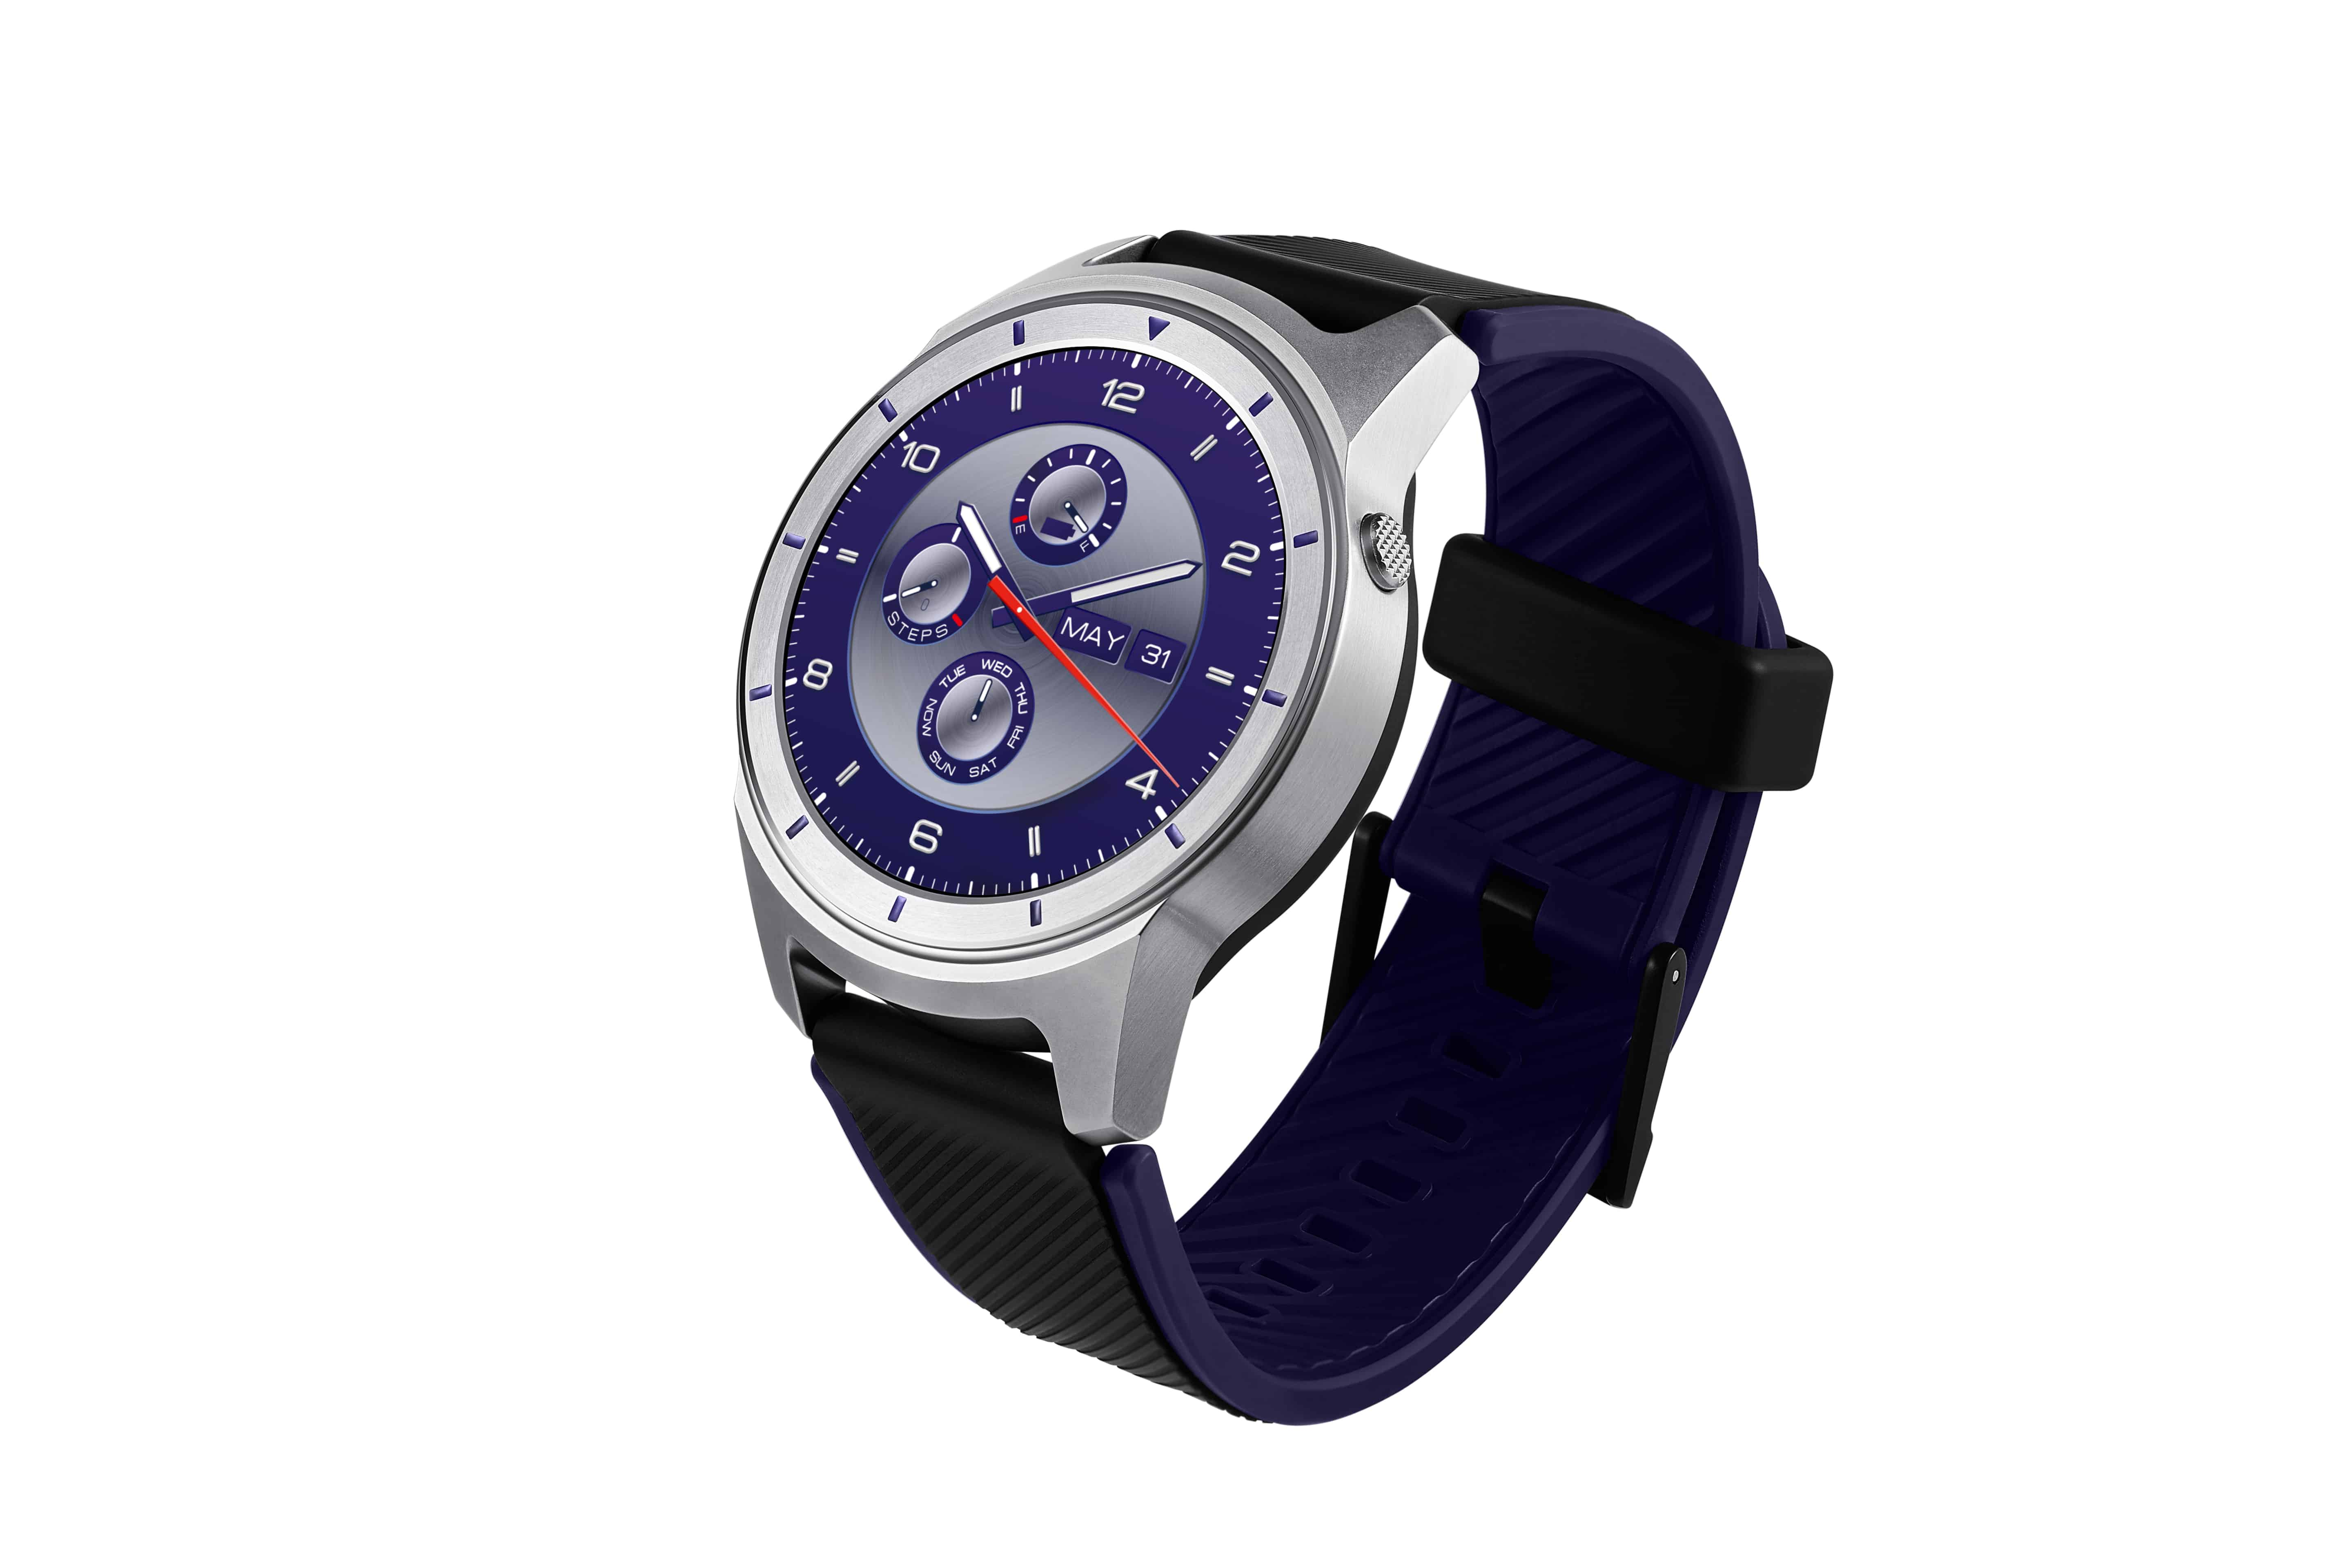 ZTE Quartz Android Wear 2.0 smartwatch - specs, photos, availability launches smartwatch, its first wearable for U.S. market